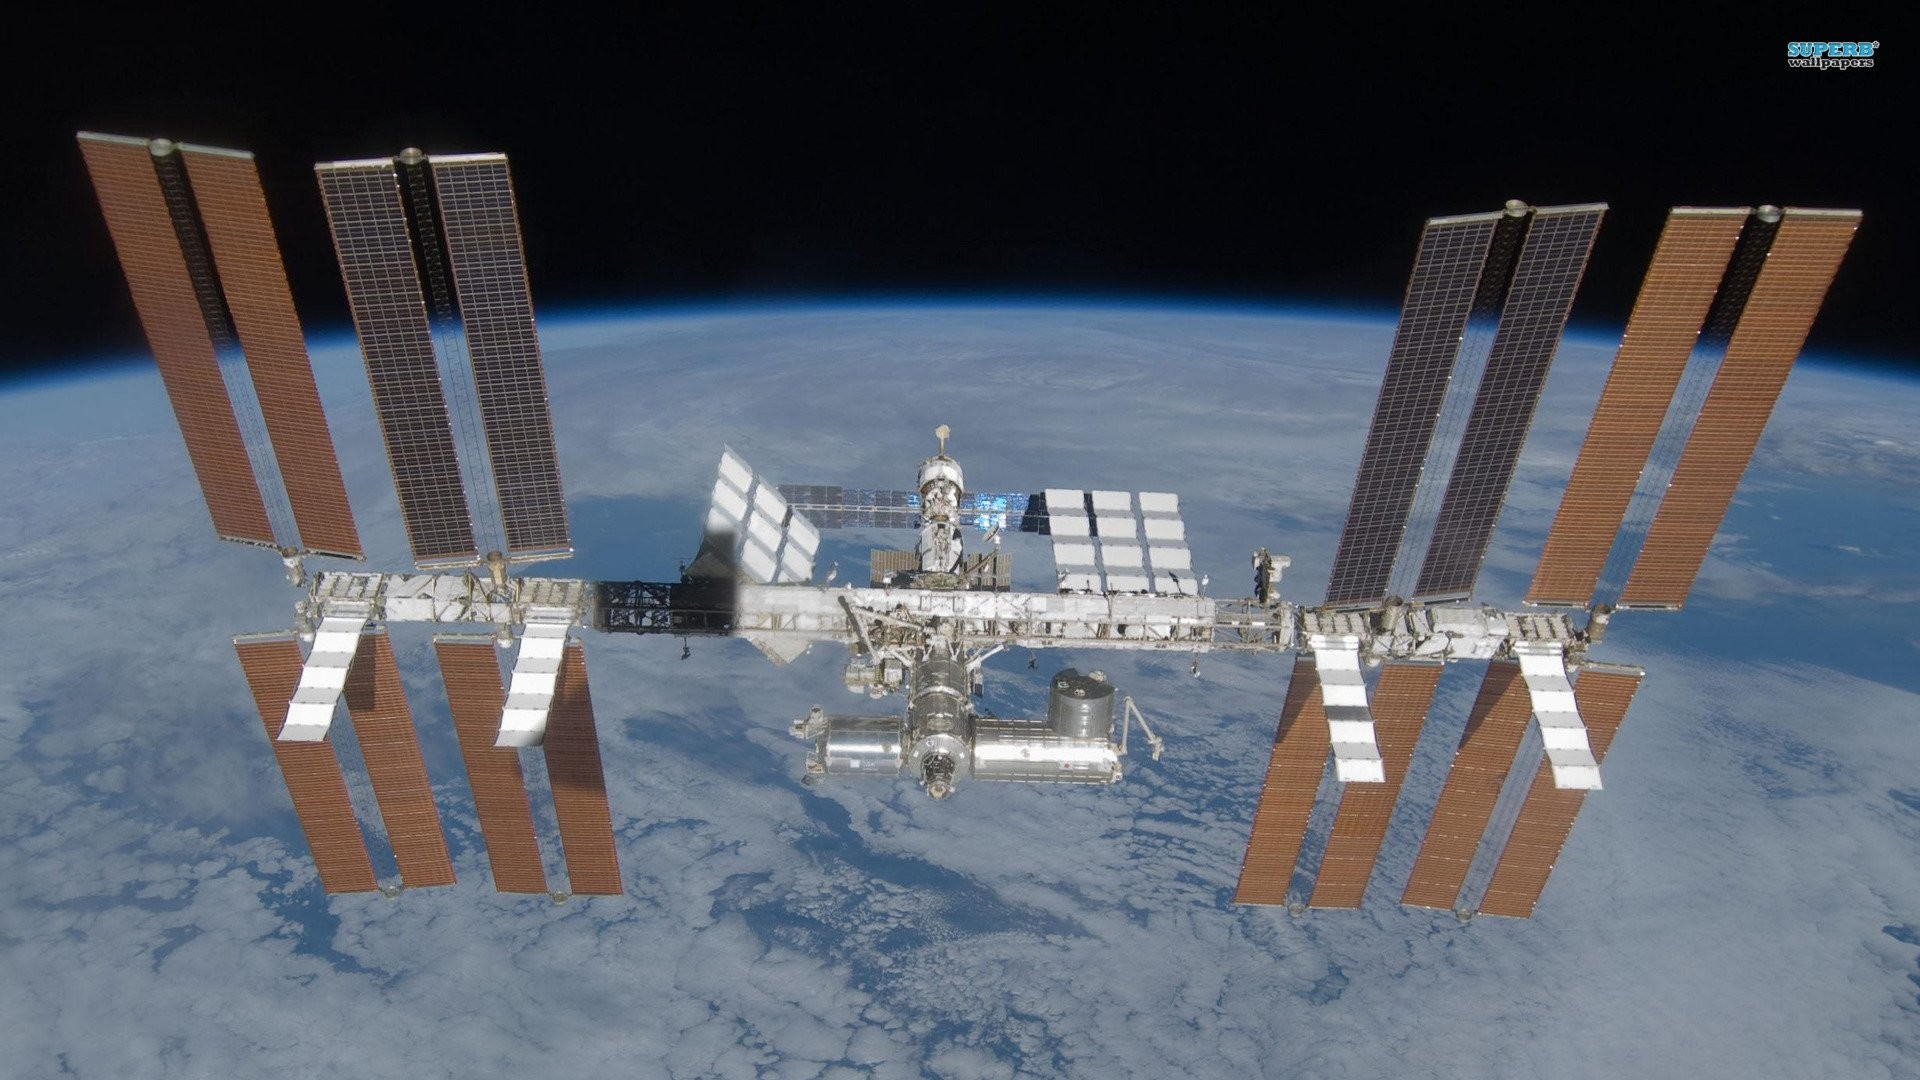 1920x1080 International Space Station 366246